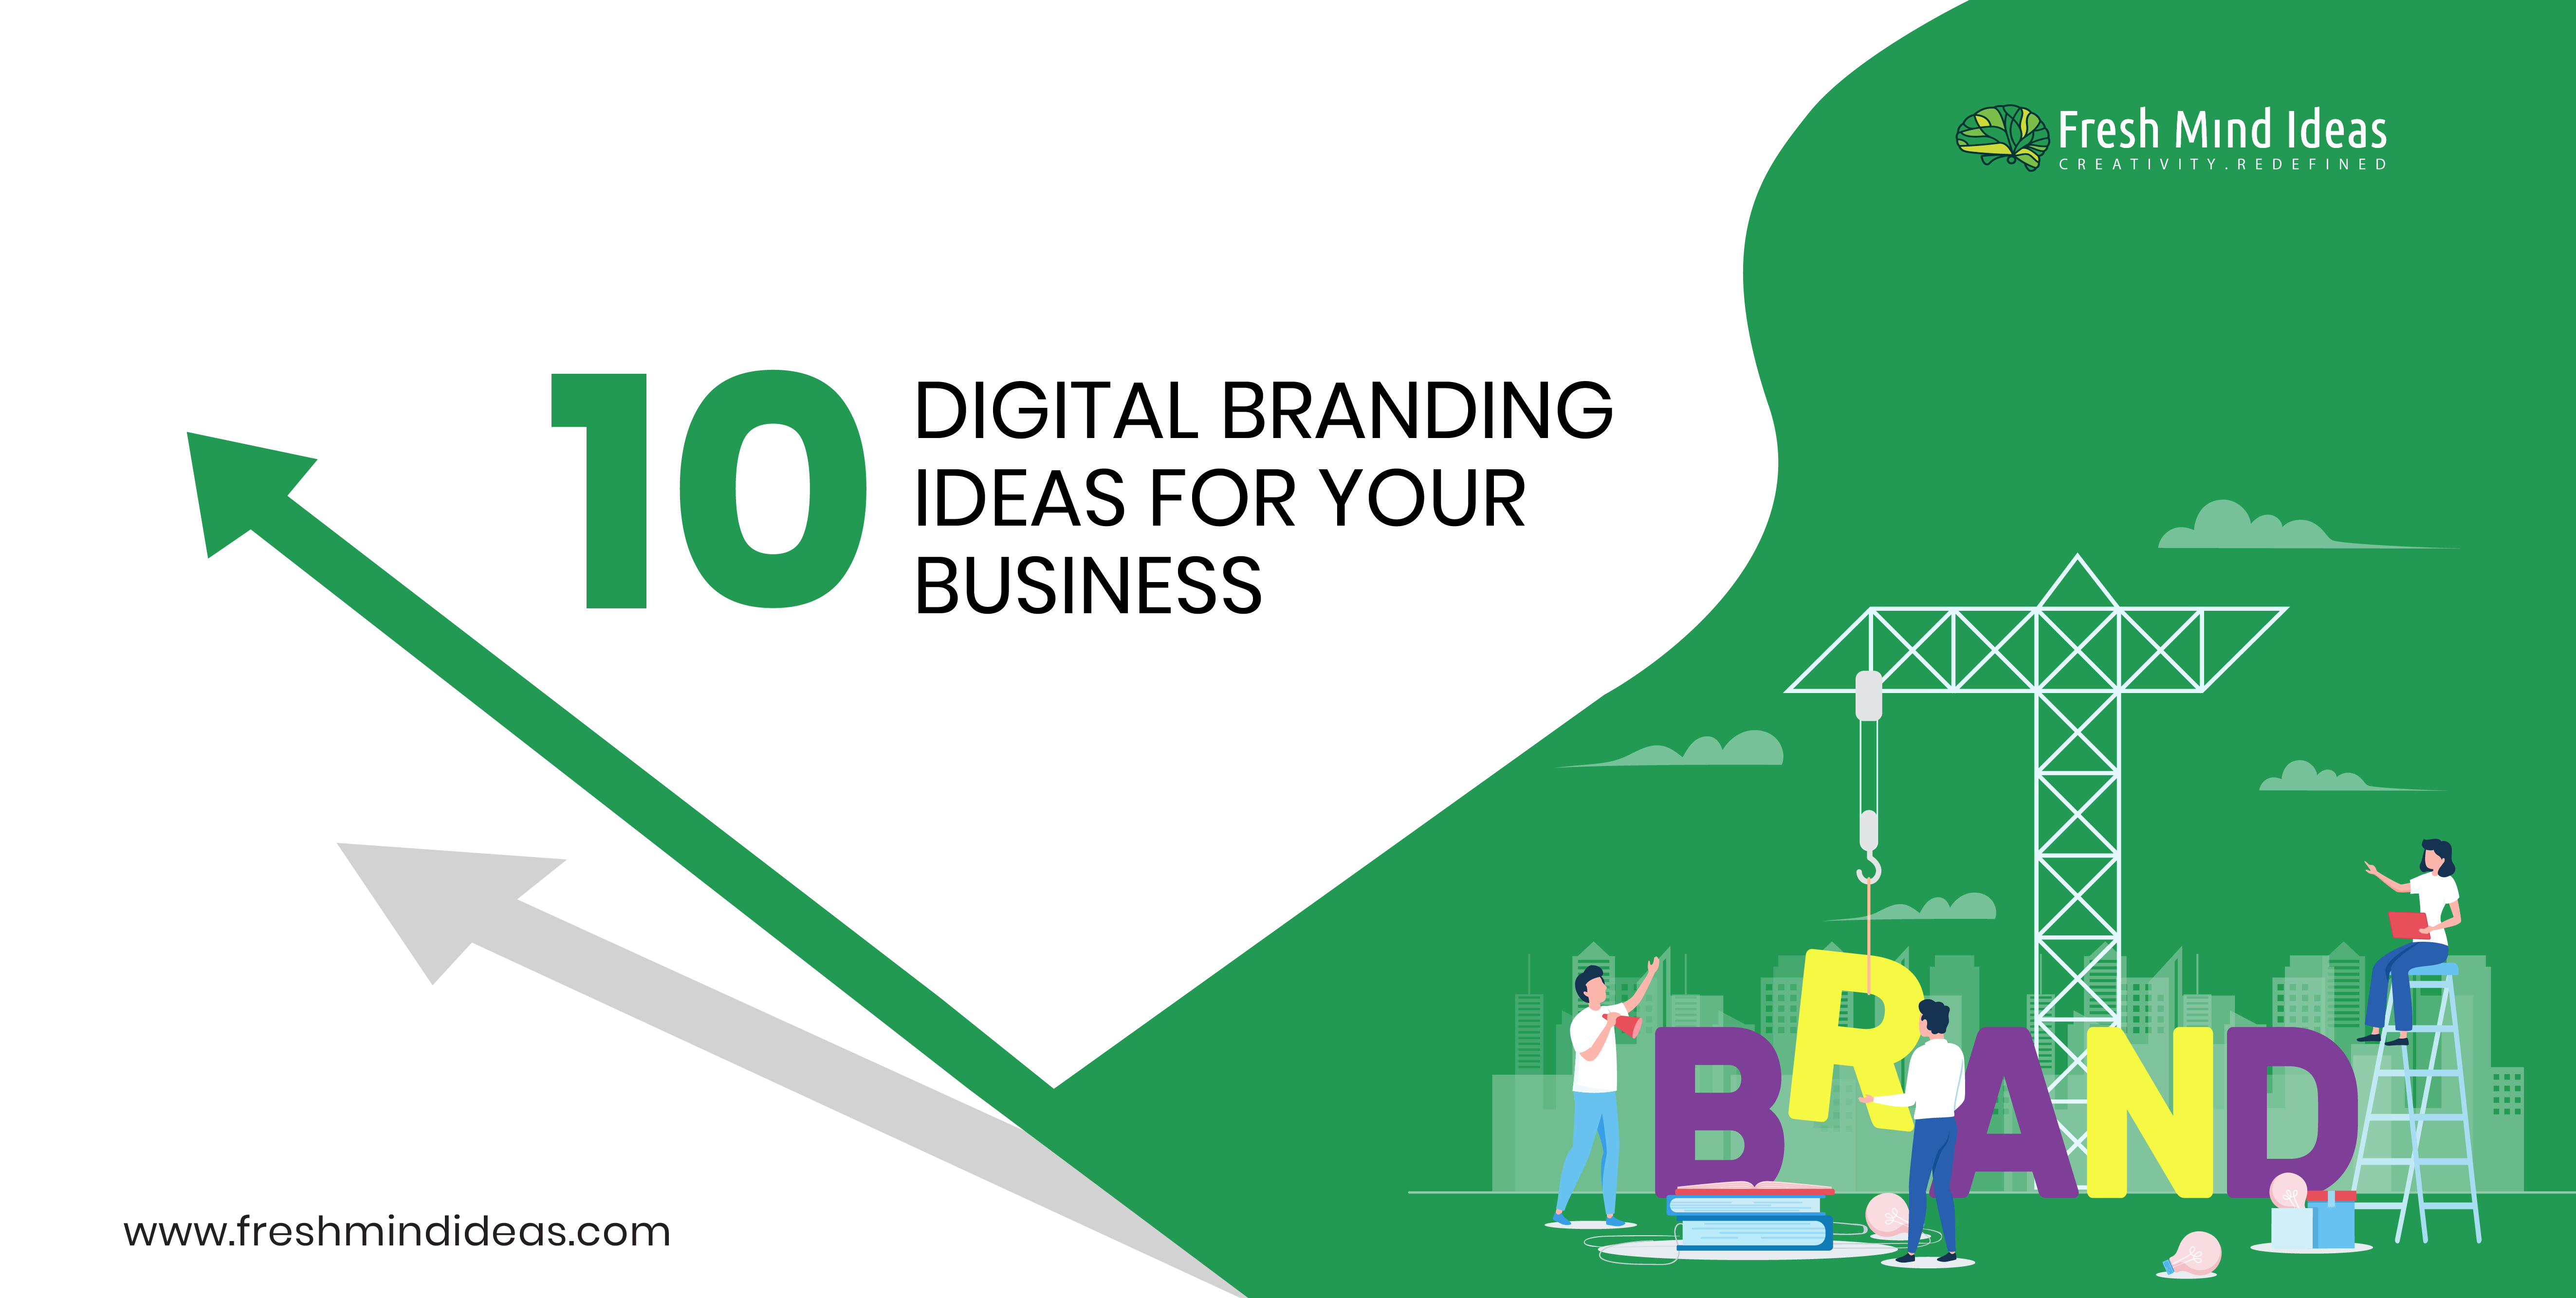 10 Digital Branding Ideas for your Business